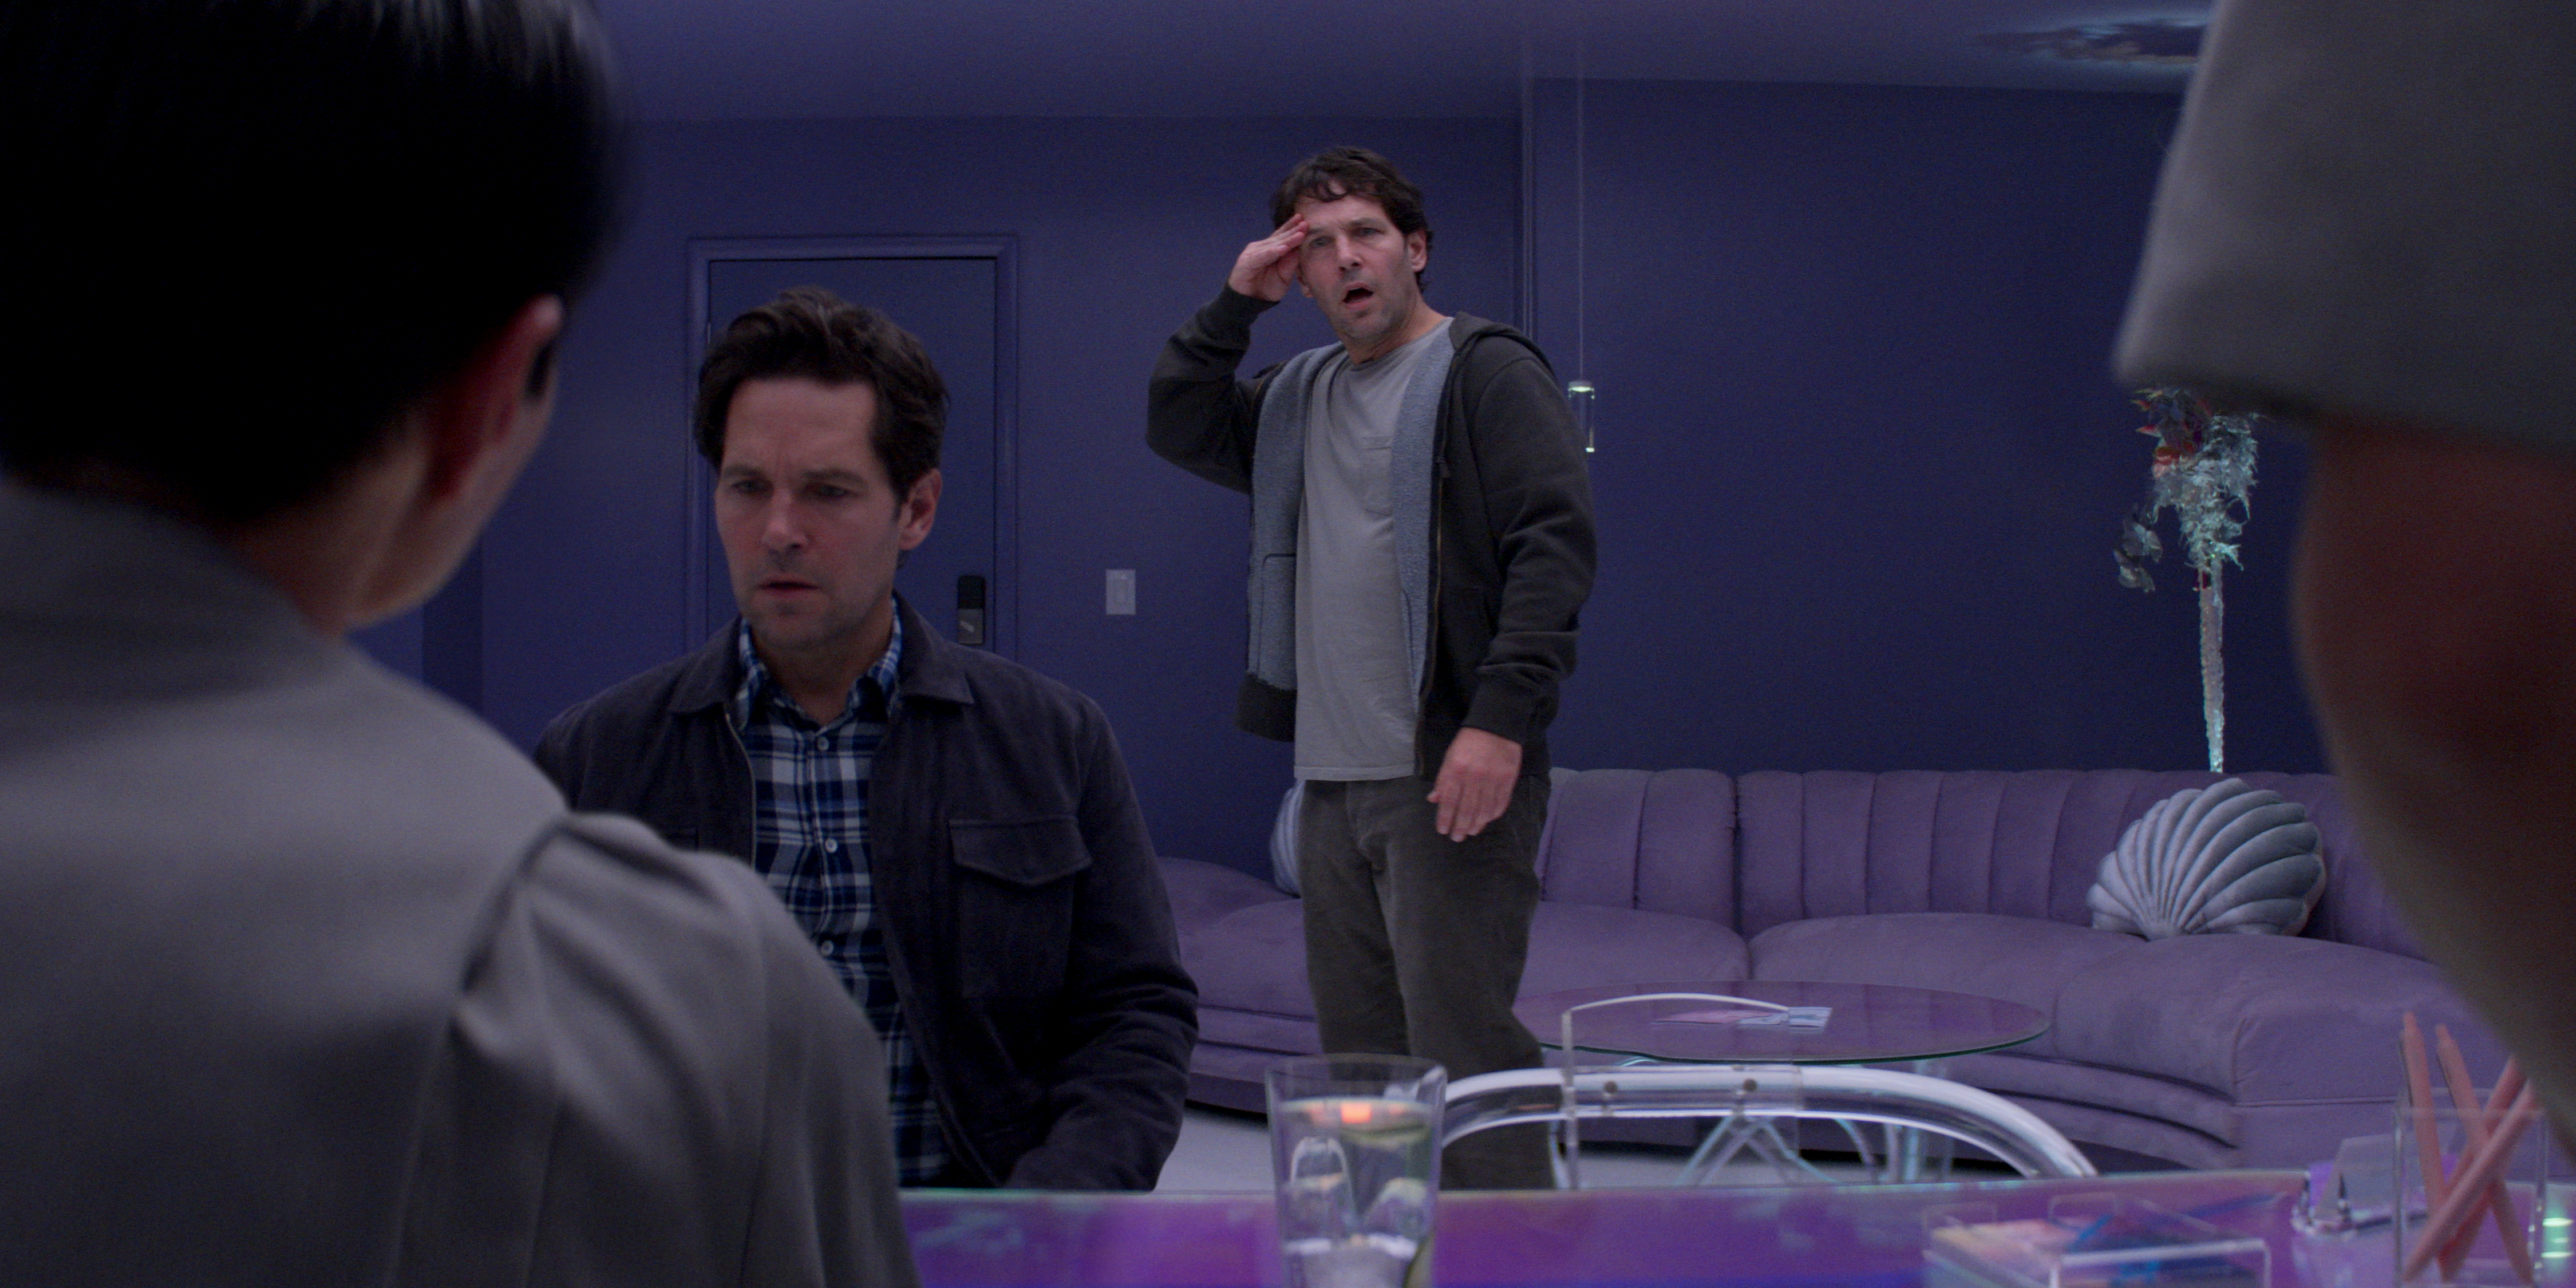 See Paul Rudd and his costar Paul Rudd in first look at new Netflix comedy